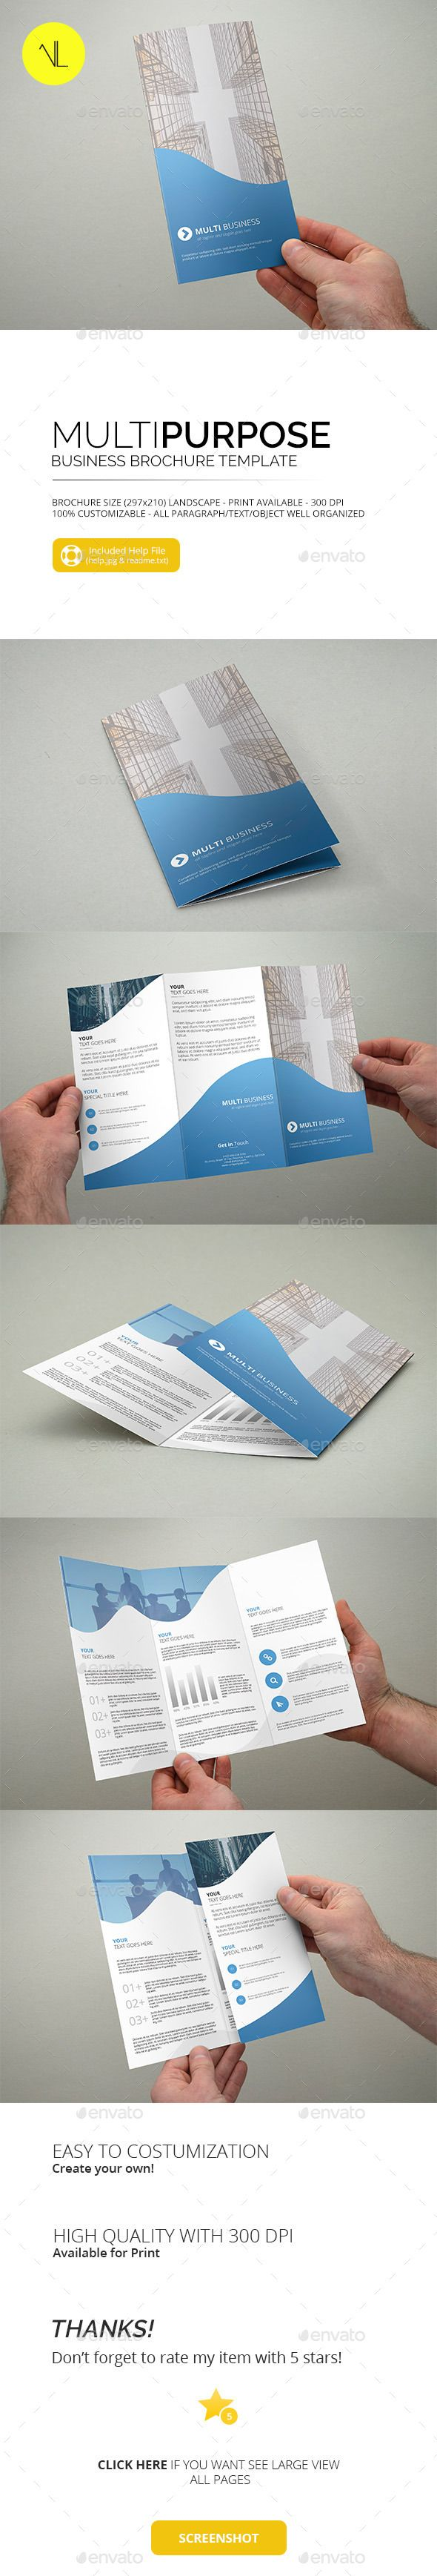 Multipurpose - Business Trifold Brochure